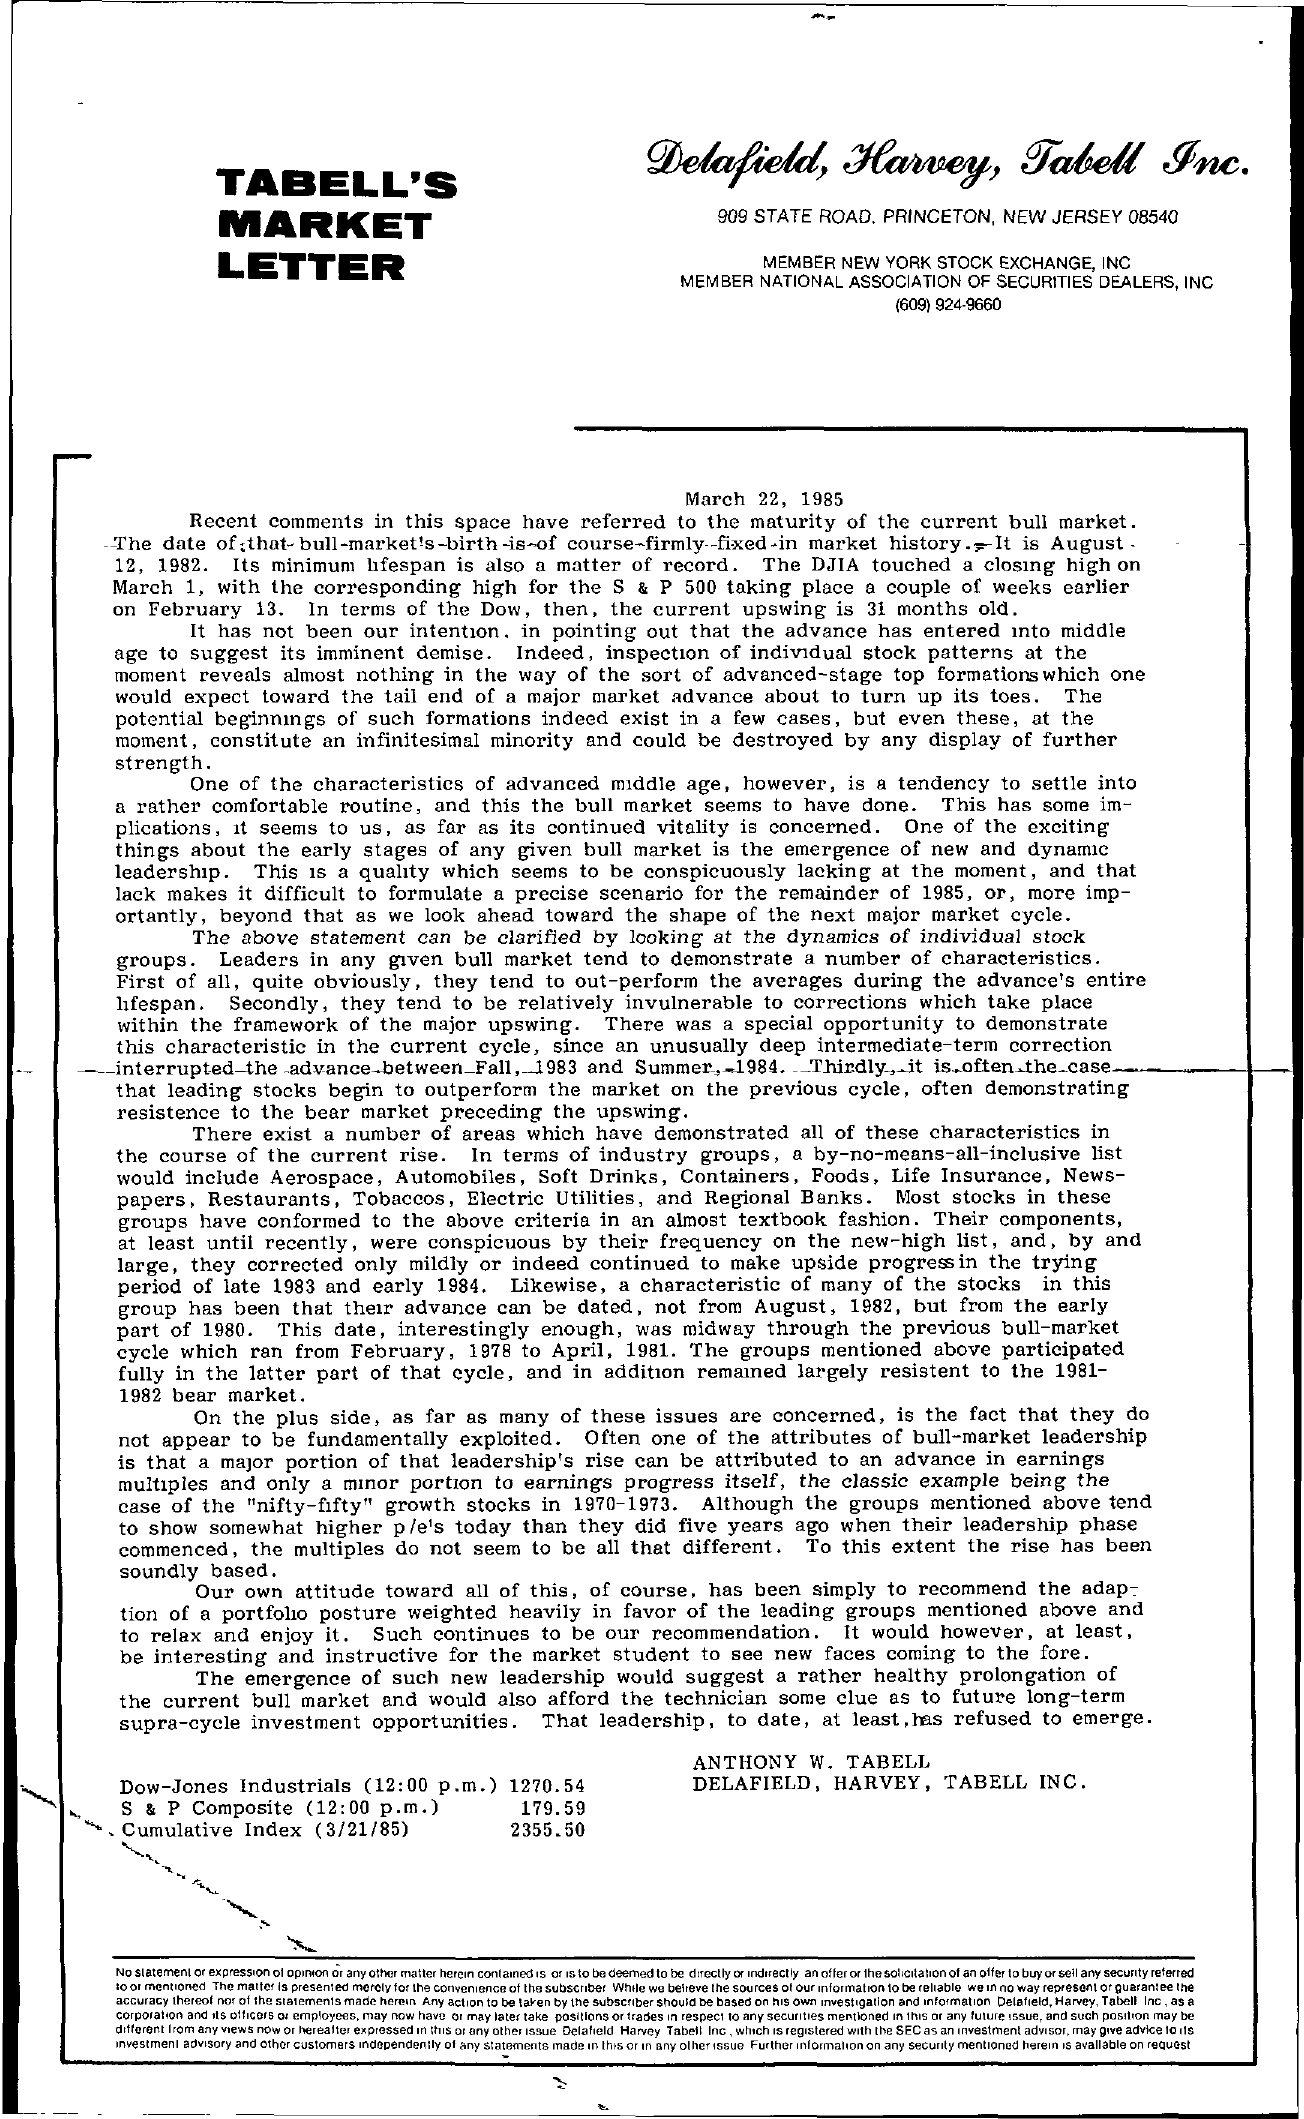 Tabell's Market Letter - March 22, 1985